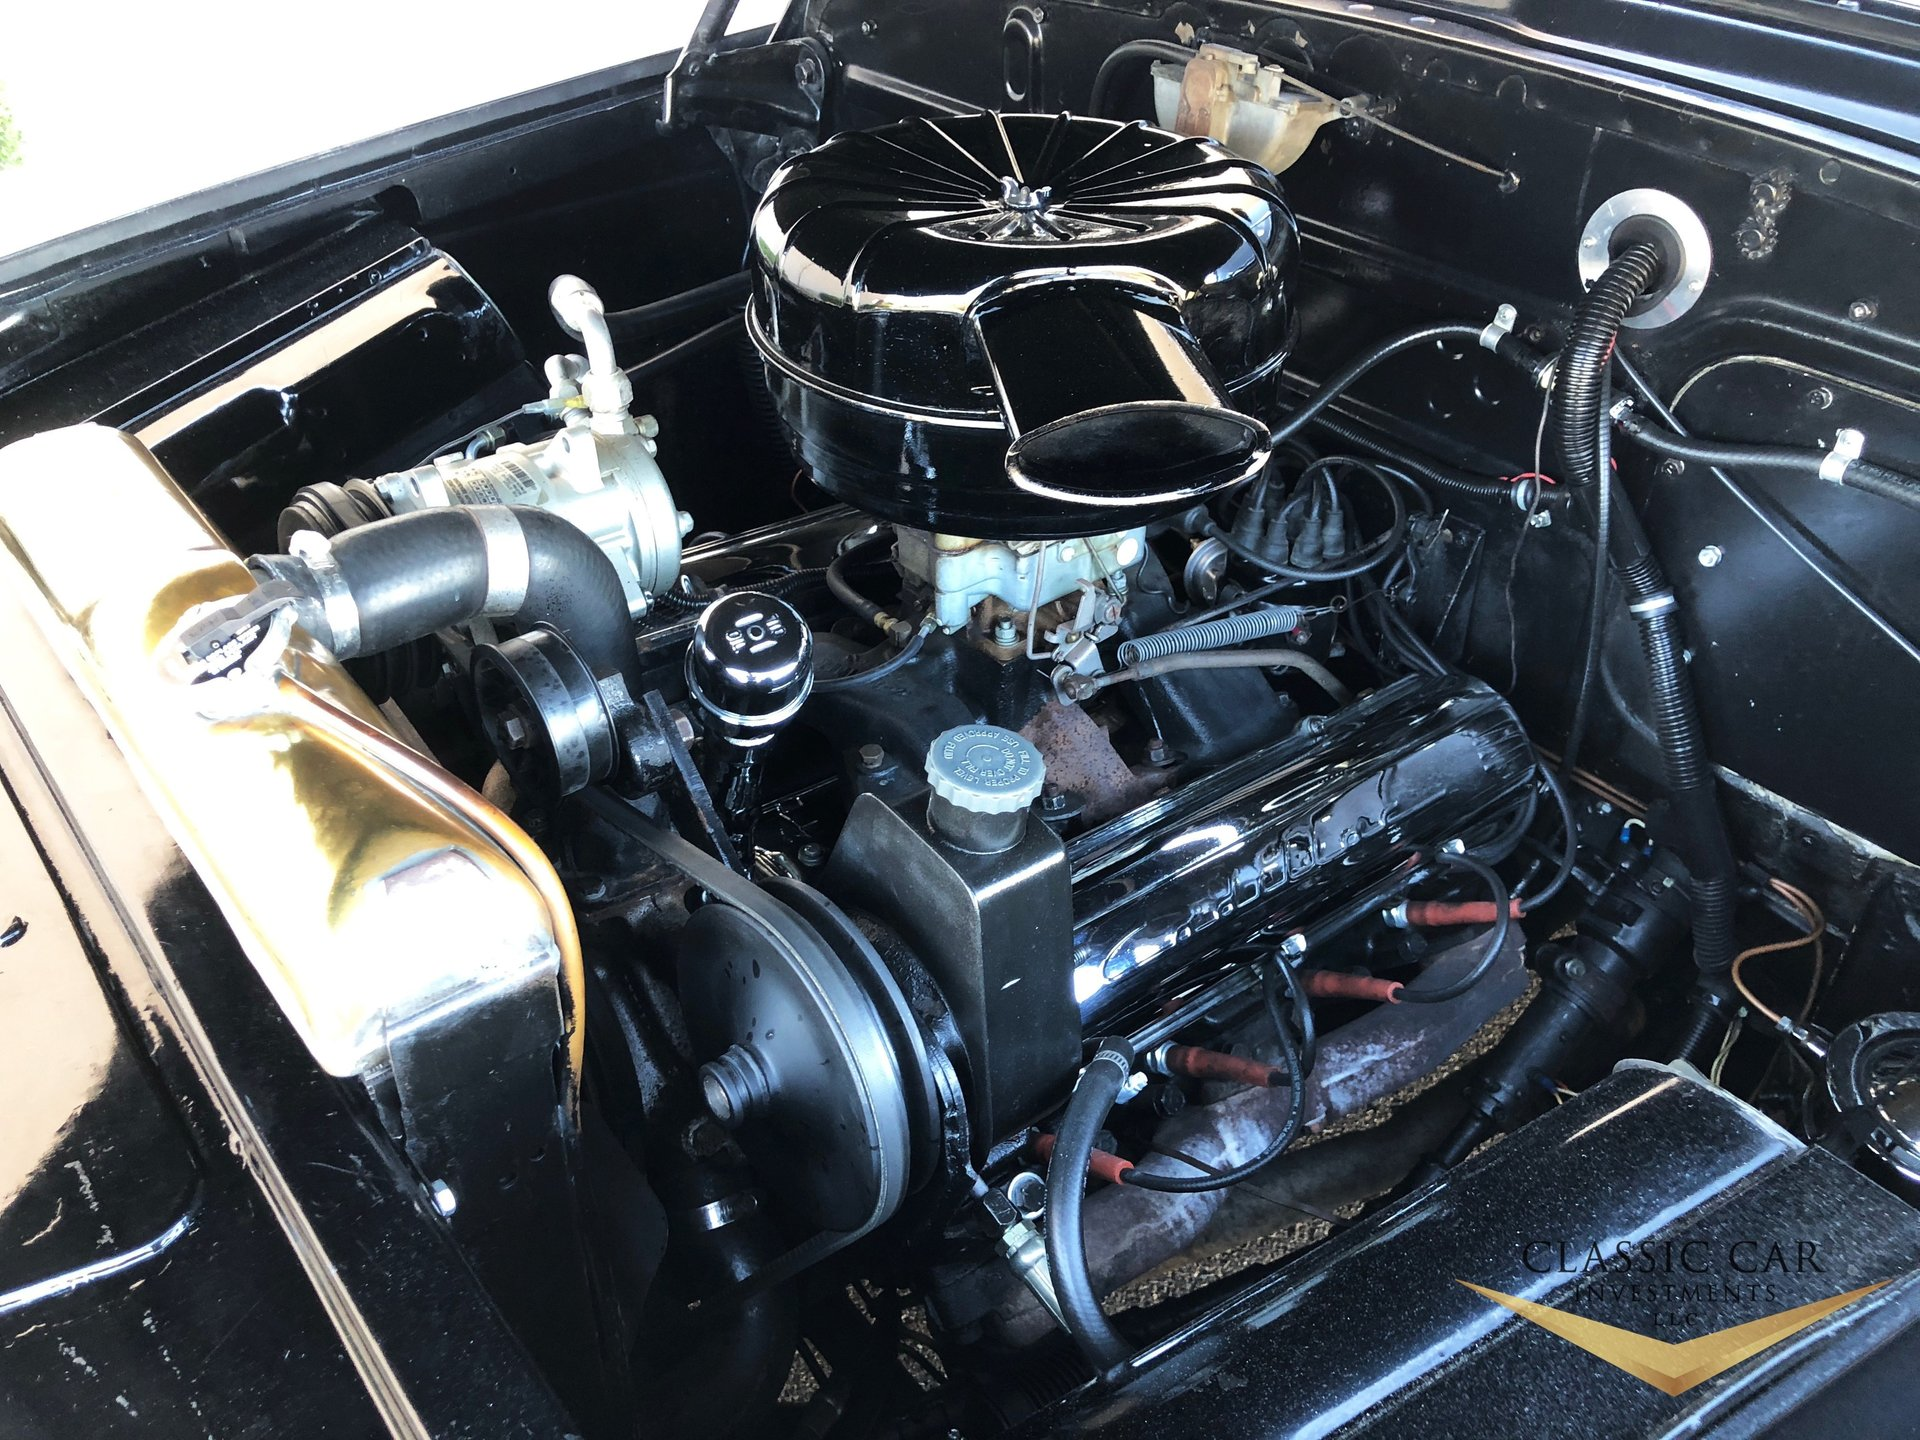 1949 Cadillac Series 61 Club Coupe For Sale 92113 Mcg V8 Engine